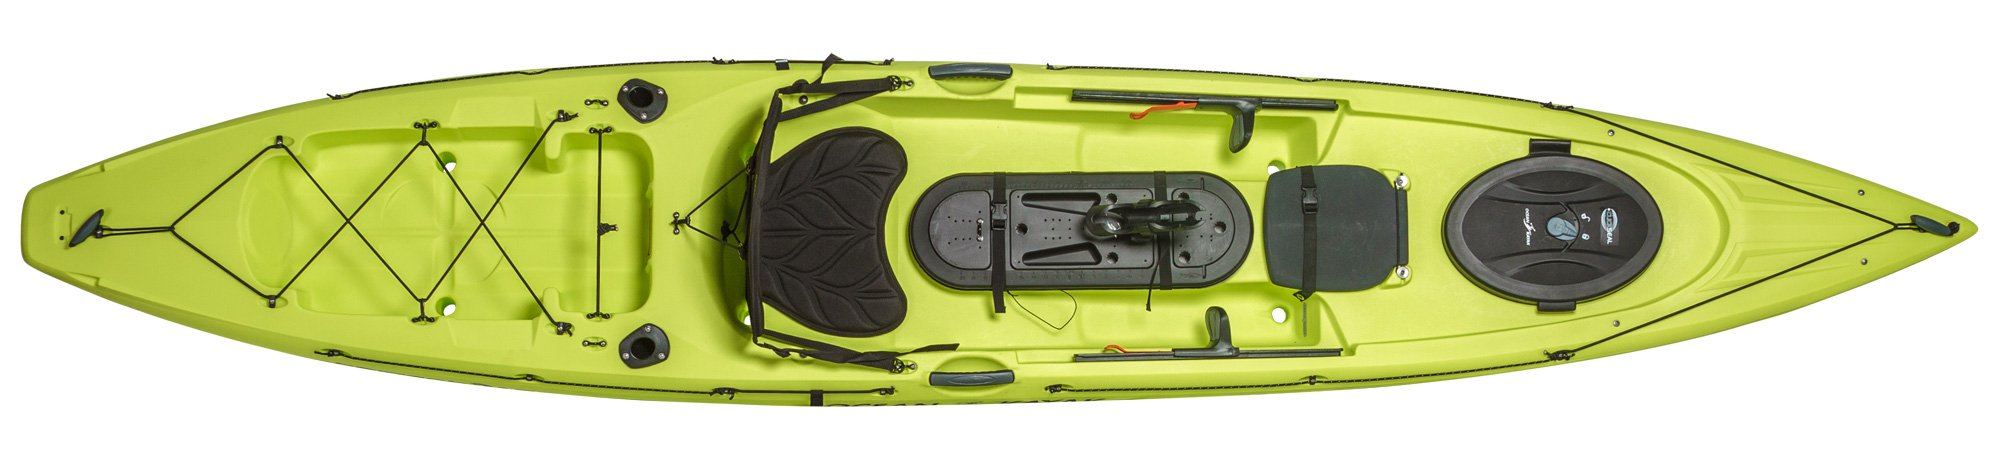 Ocean Kayak Trident 13 Sit-On-Top Kayak